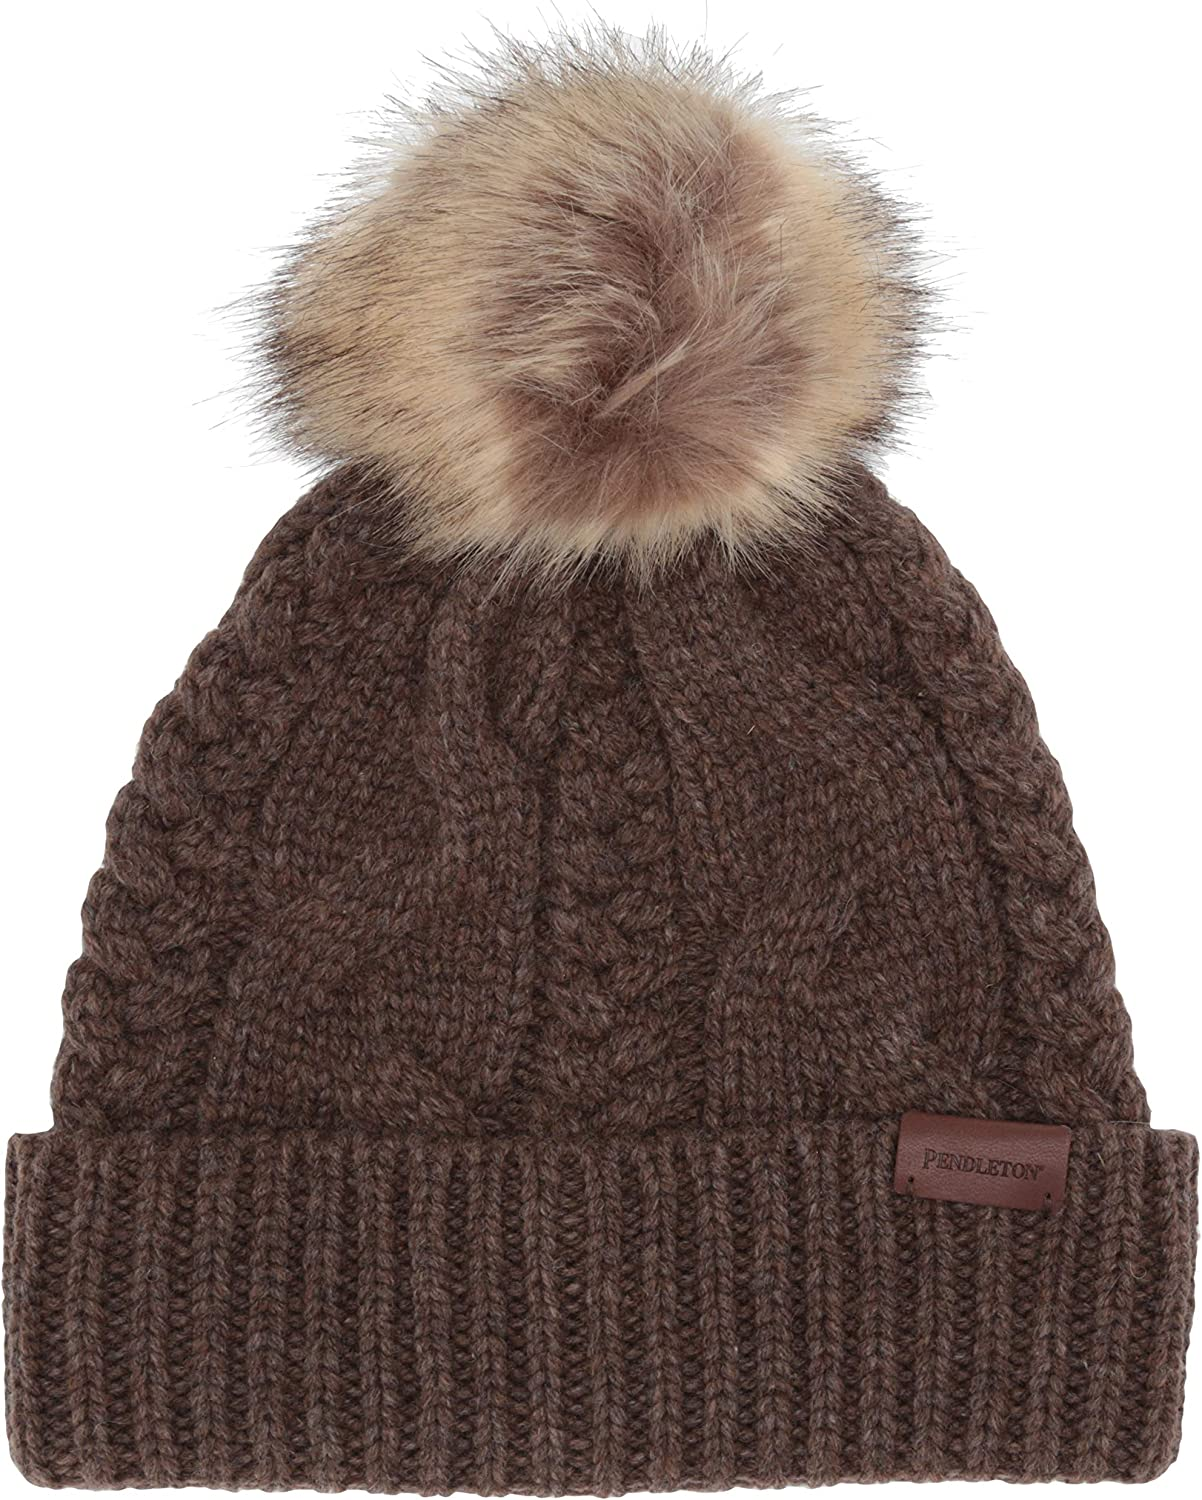 Pendleton Womens Cable Hat